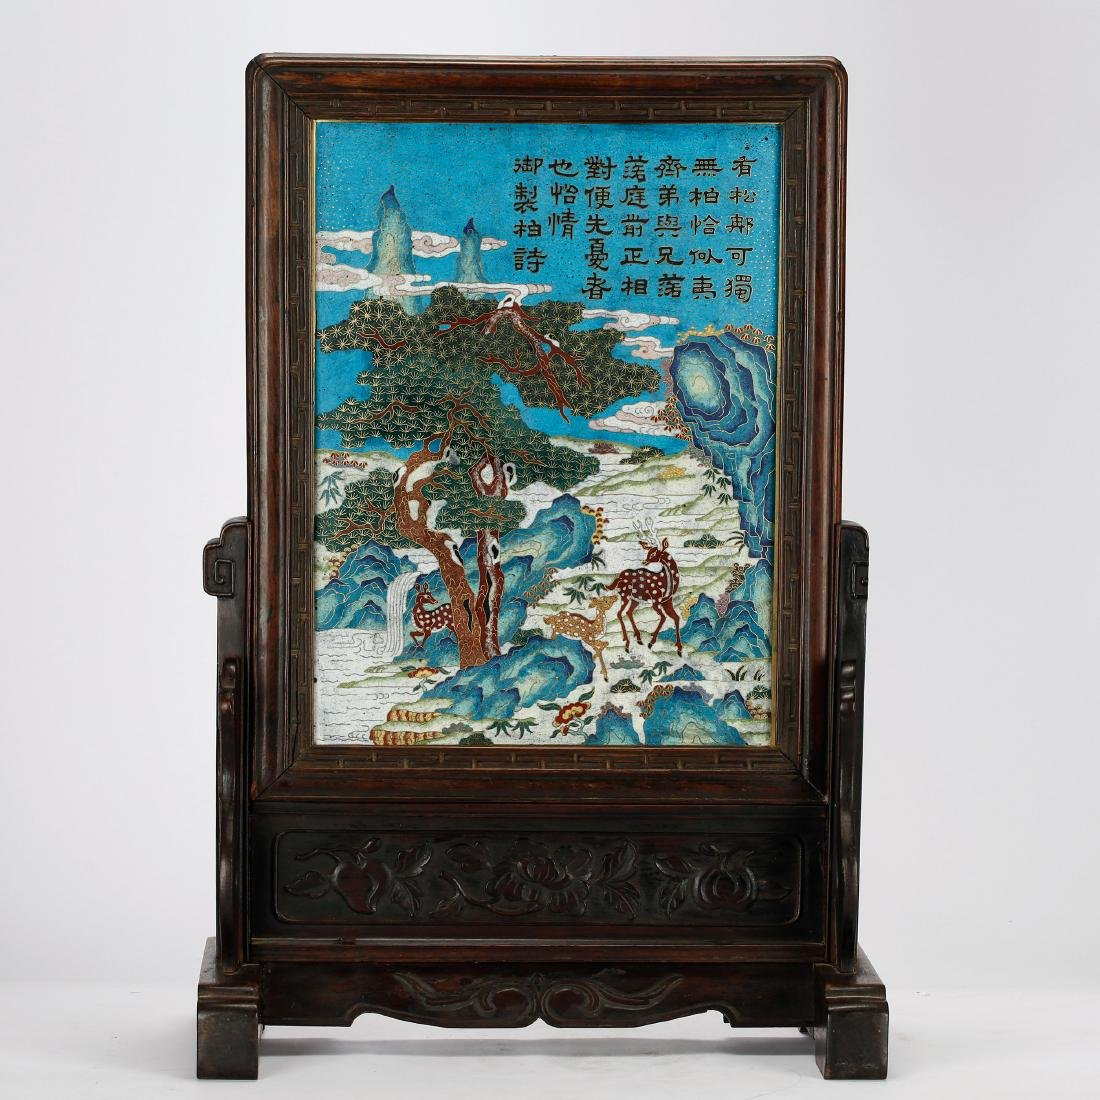 CHINESE CLOISONNE ENAMEL TABLE SCREEN, QING DYNASTY